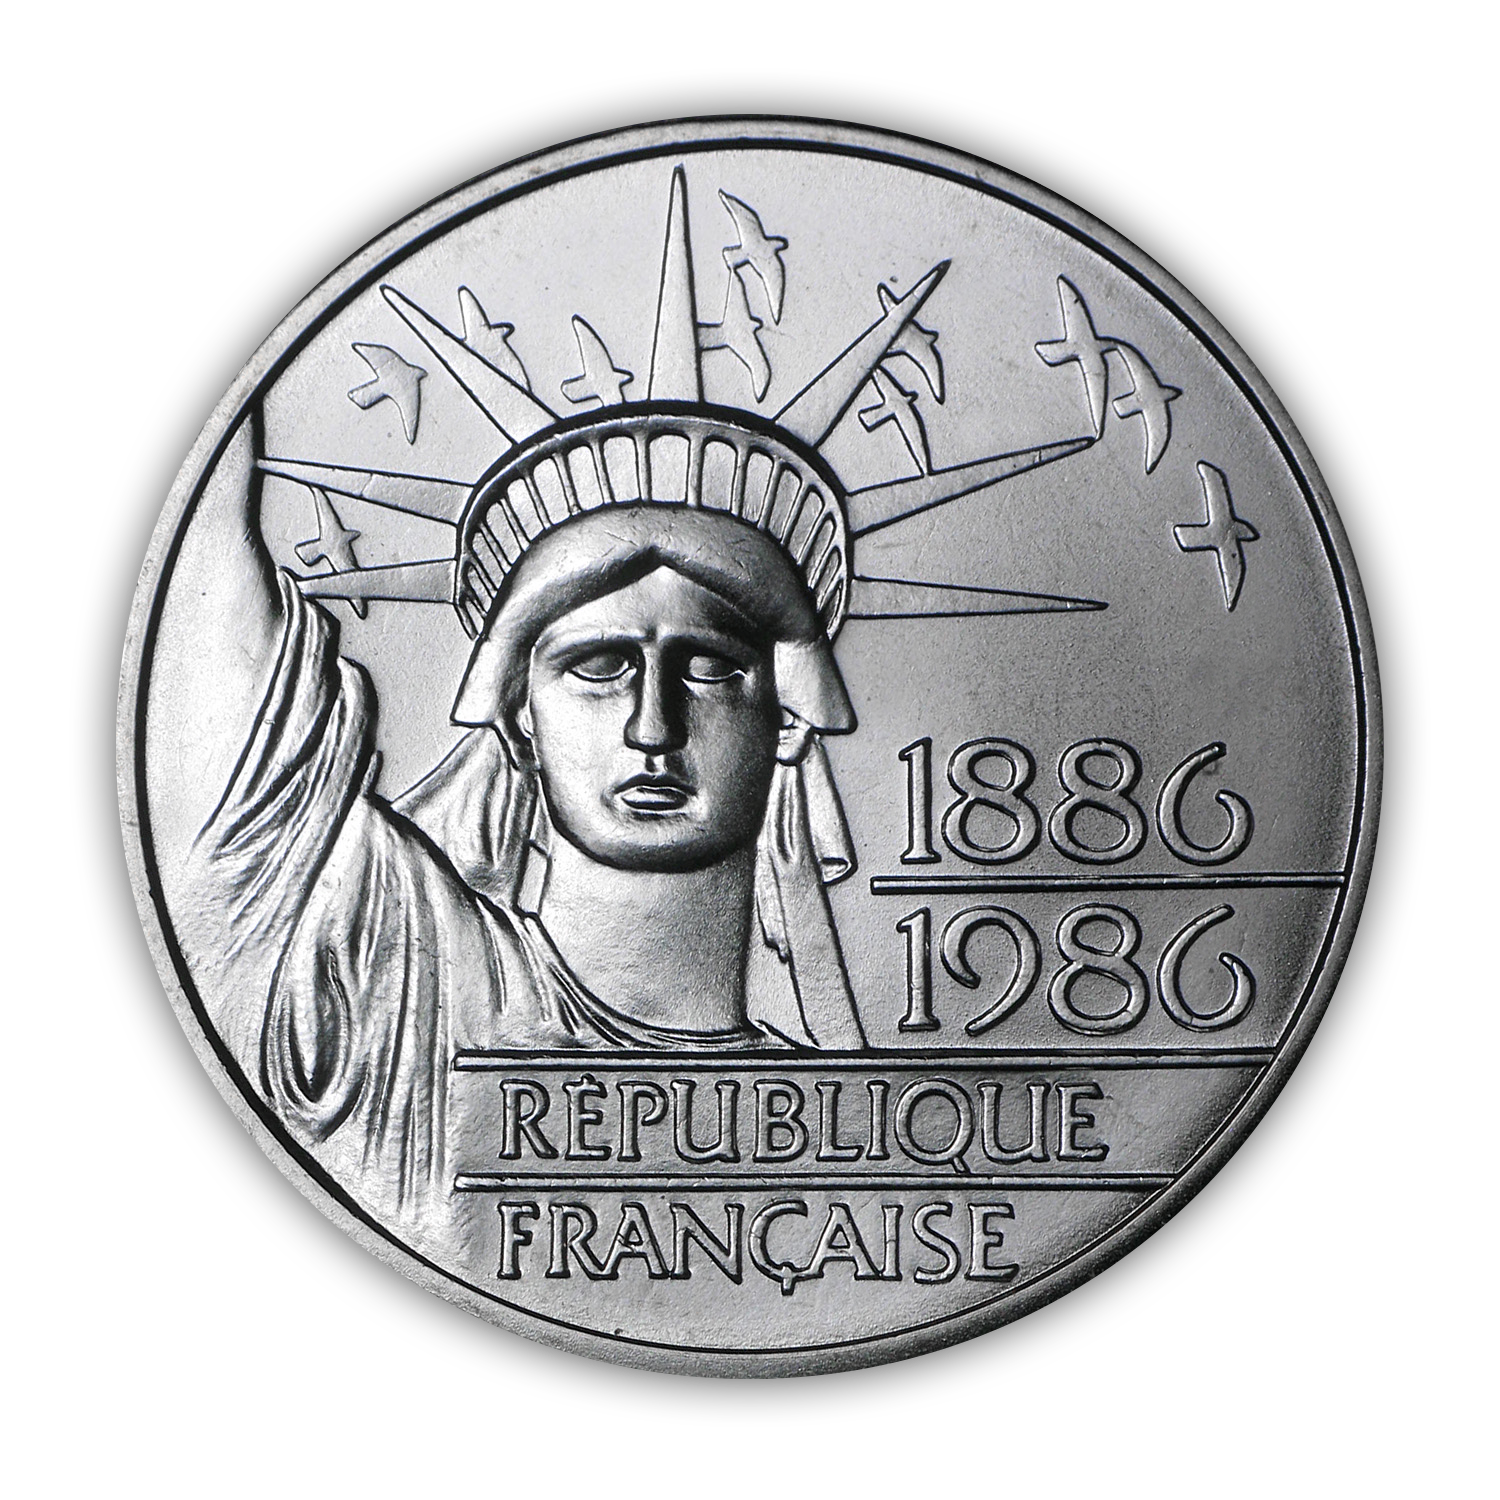 1986 Statue of Liberty 100 Franc Silver Piedfort